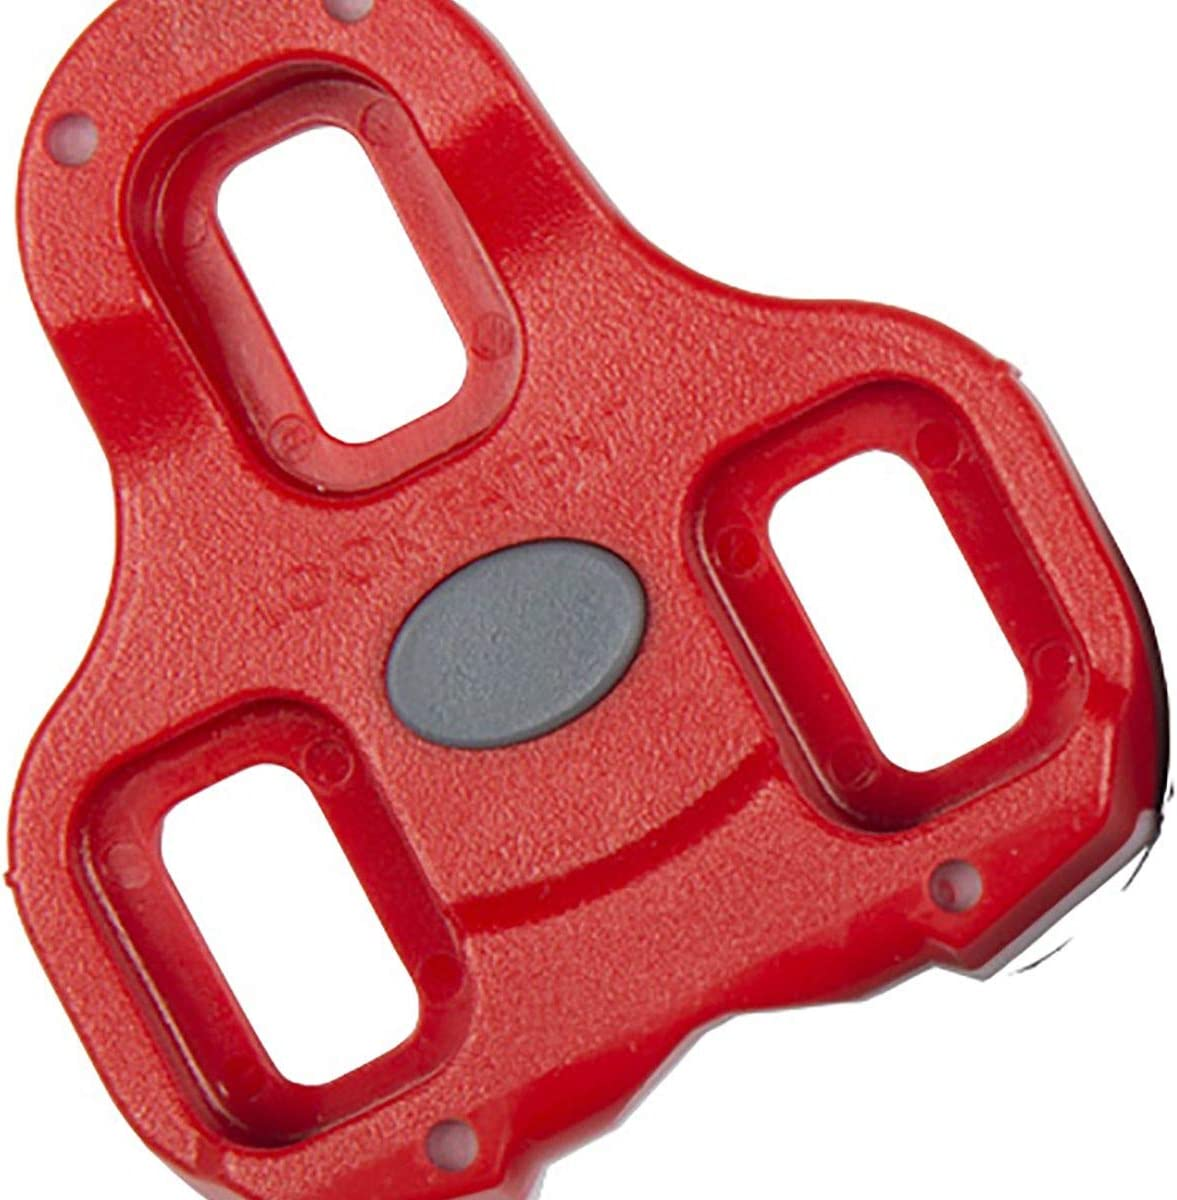 Other Look Keo compatible pedal cleats replacement set Grey 5/° float